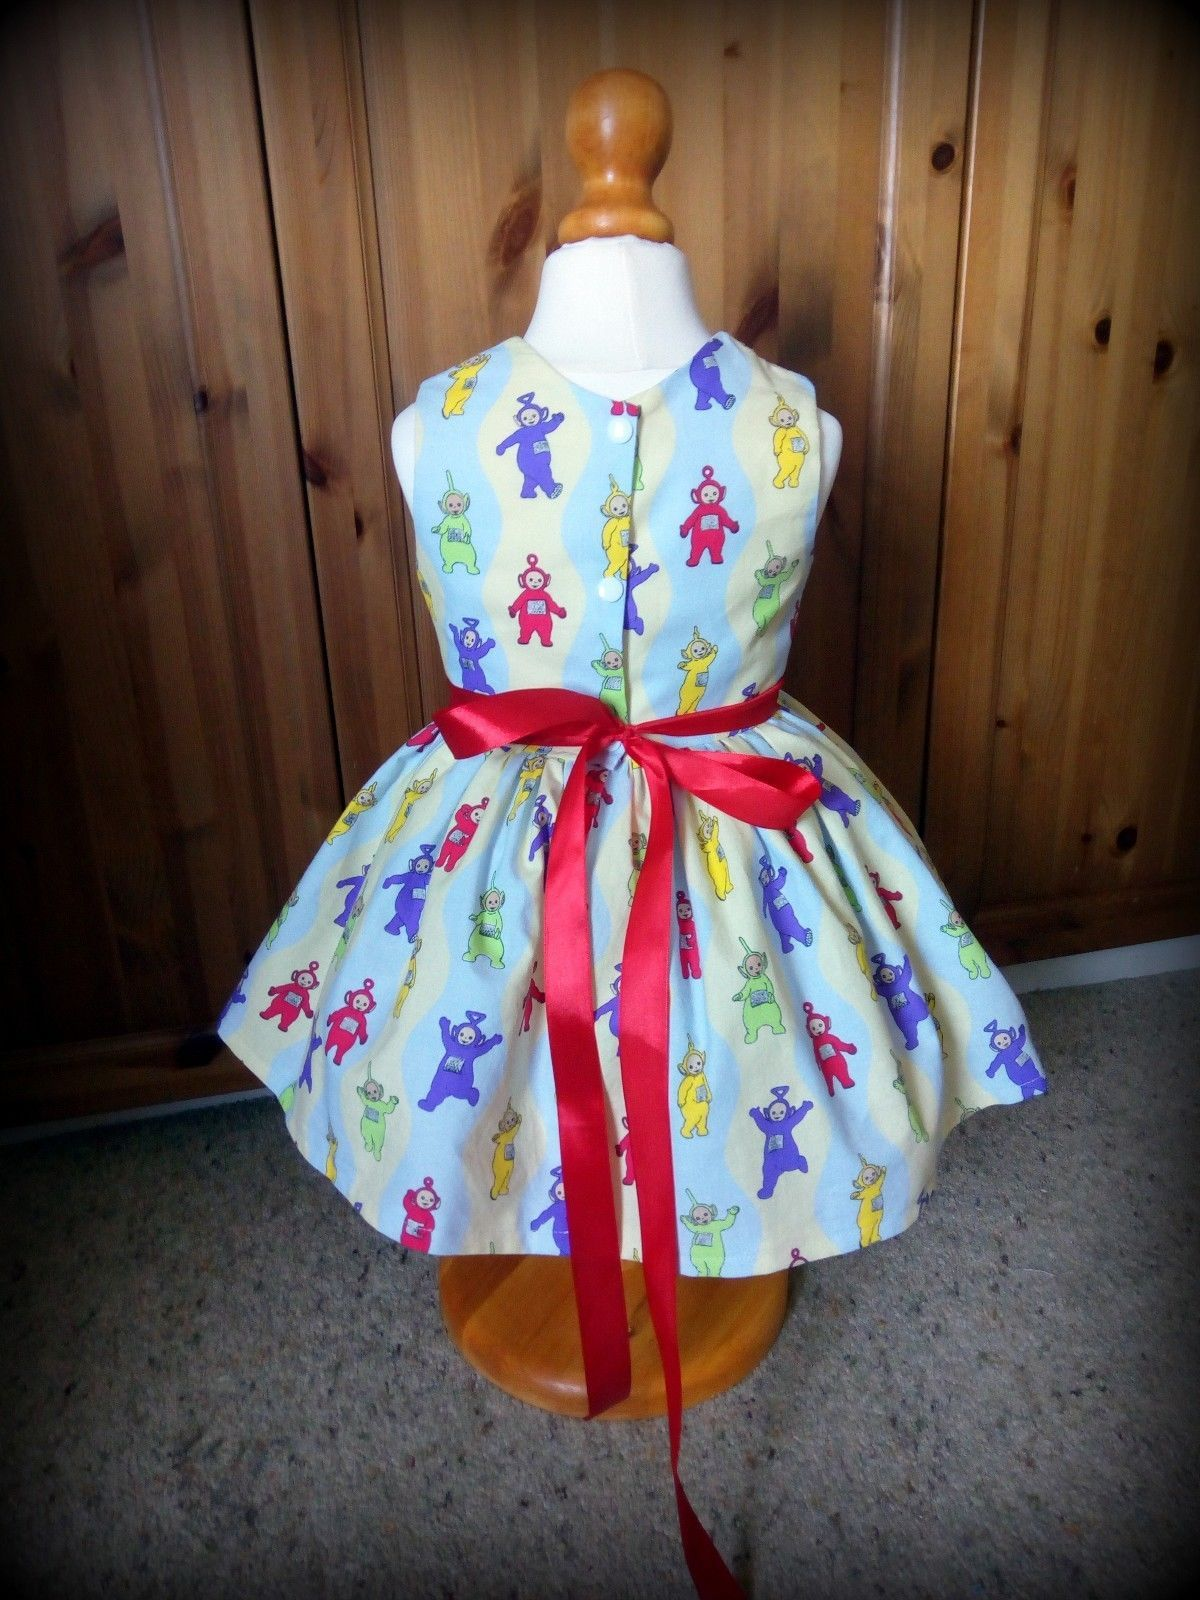 Details about teletubbies dress smash cake dressfirst